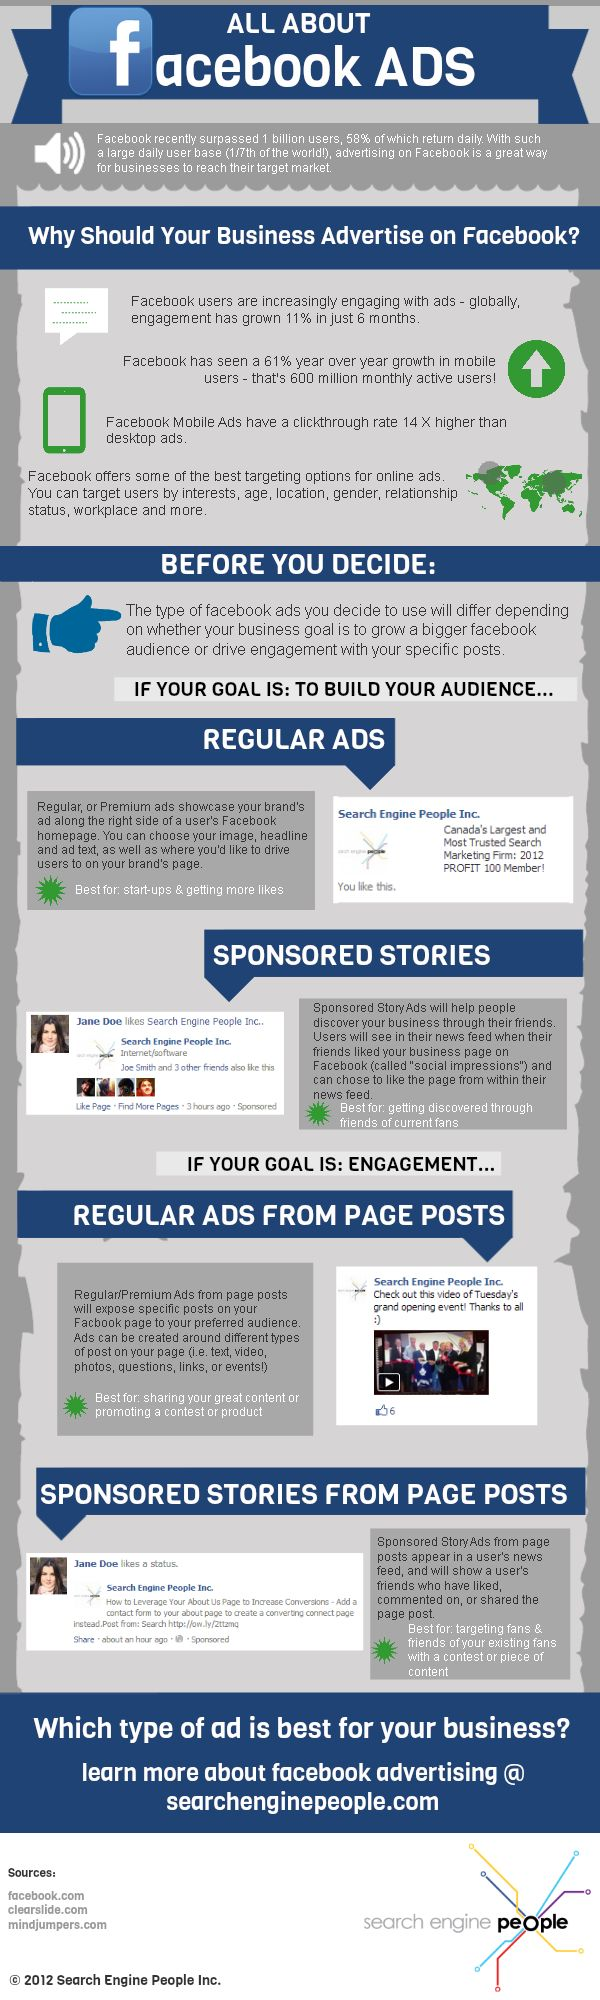 All about FaceBook Ads #infographic  www.kickagency.com  https://www.facebook.com/kickagency  https://twitter.com/kickagency  http://www.linkedin.com/company/kick-agency